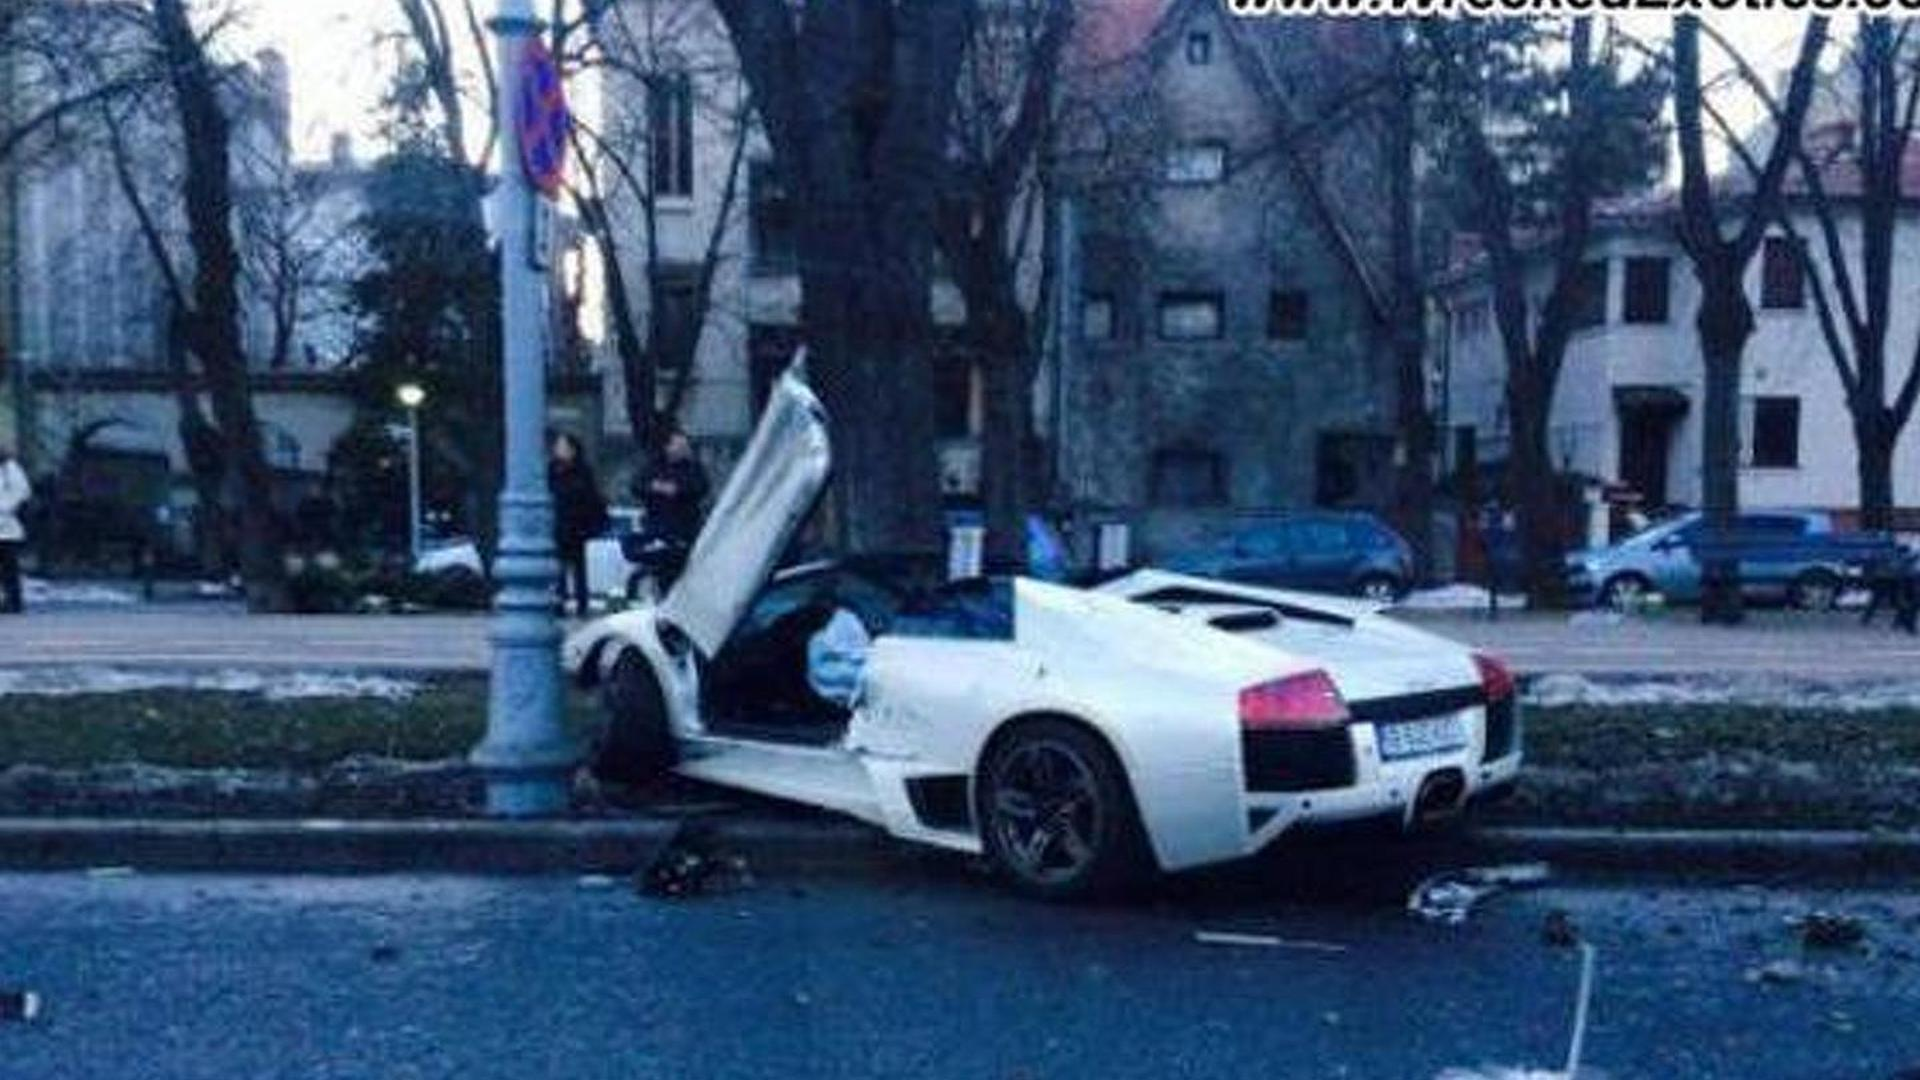 Lamborghini Murcielago Lp640 Roadster Crashed Heavily In Romania